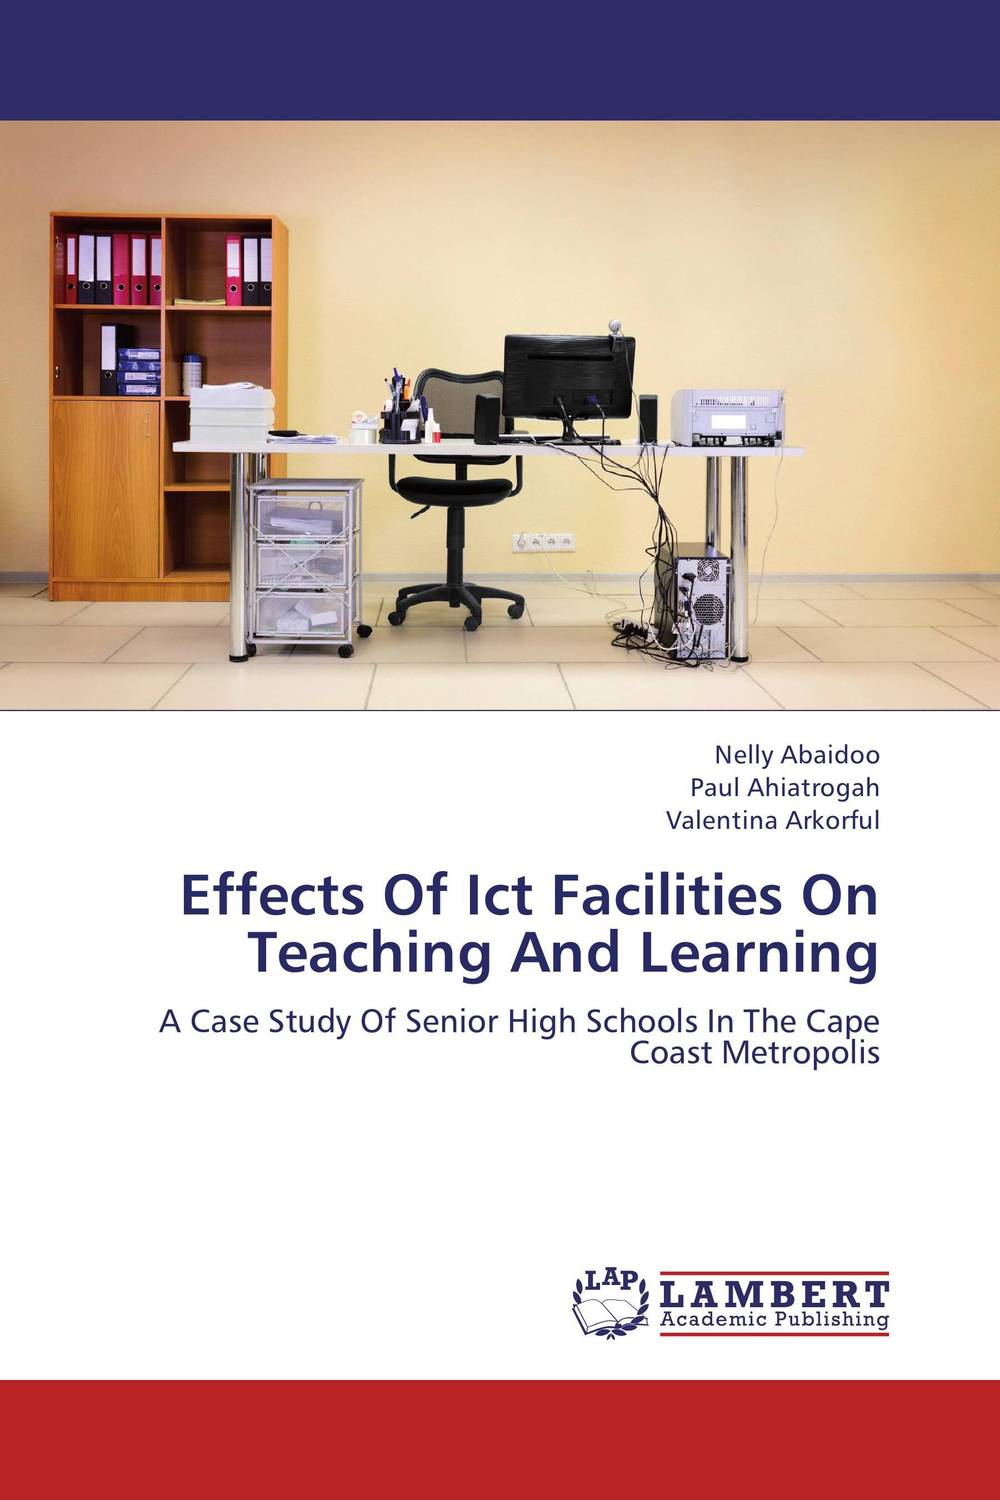 Effects Of Ict Facilities On Teaching And Learning